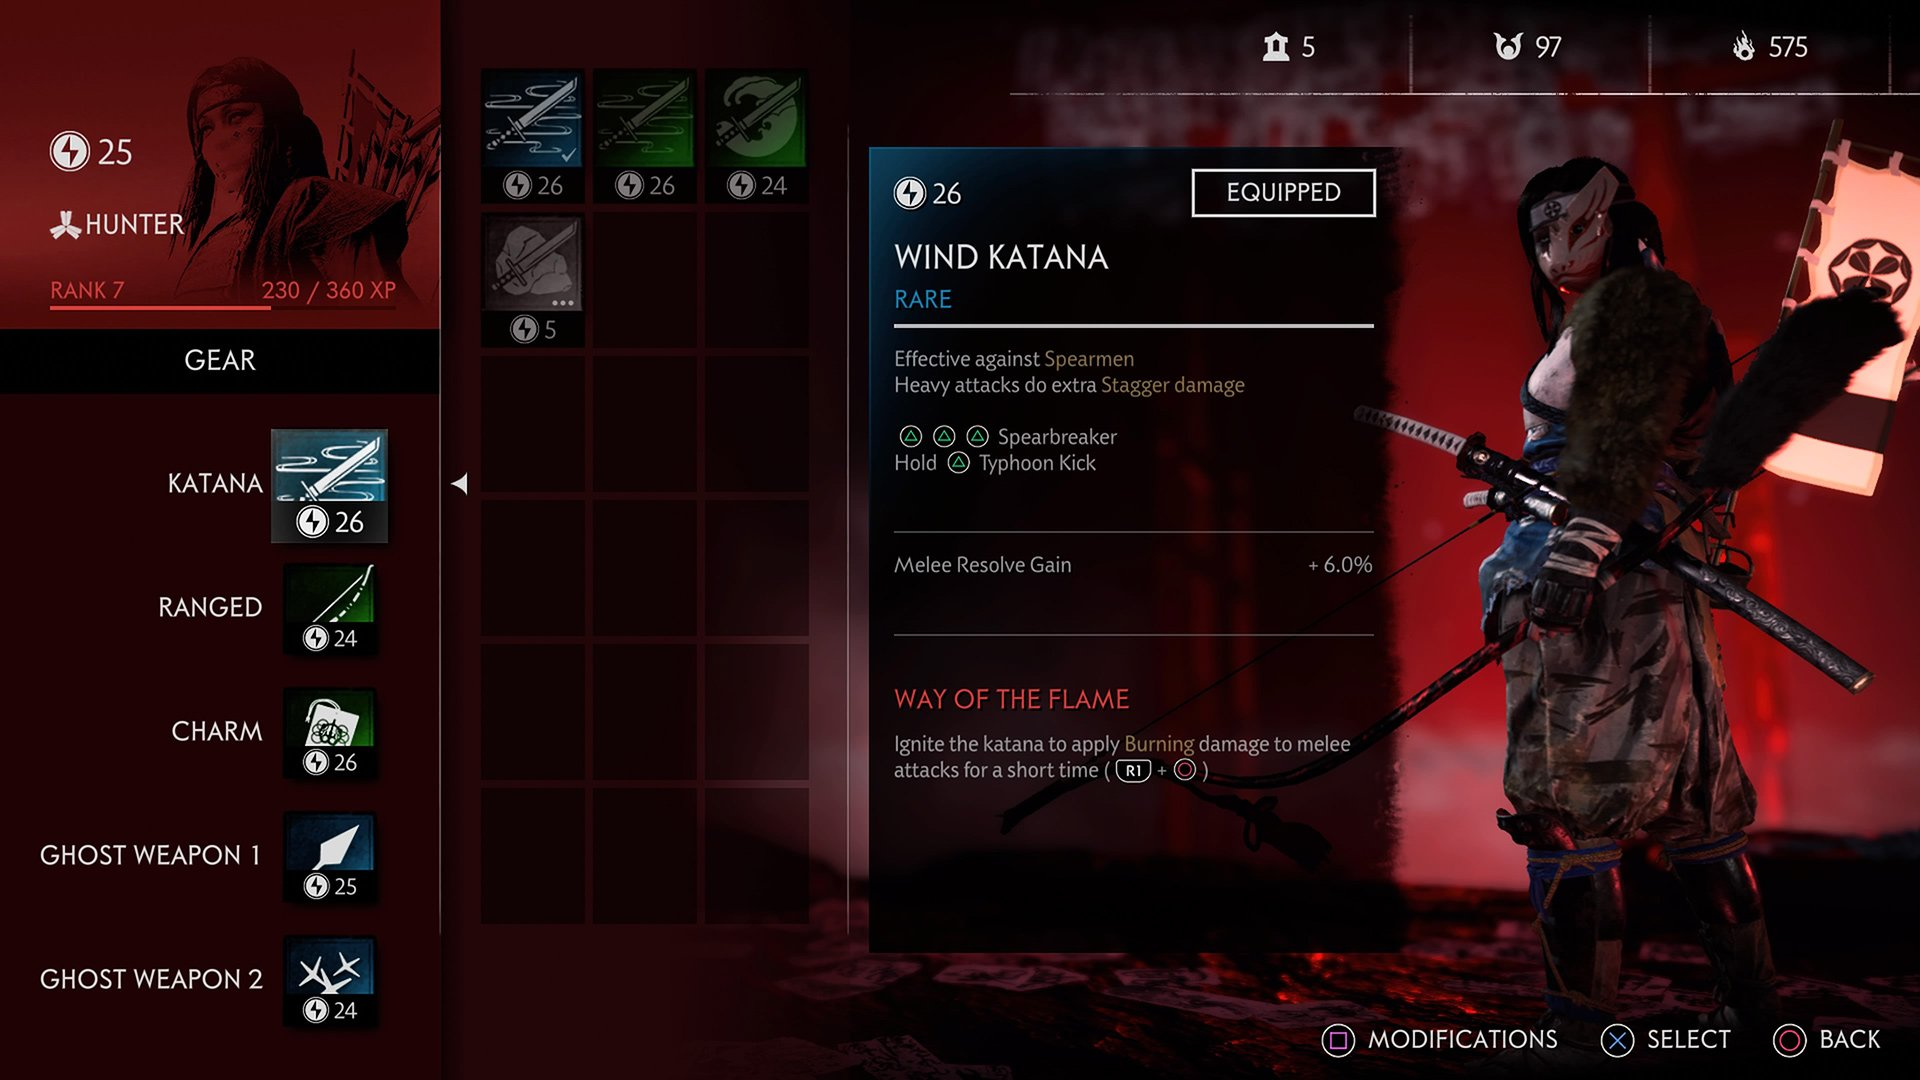 Your gear loadout in Legends includes a melee and ranged weapon, charm, and two ghost weapons